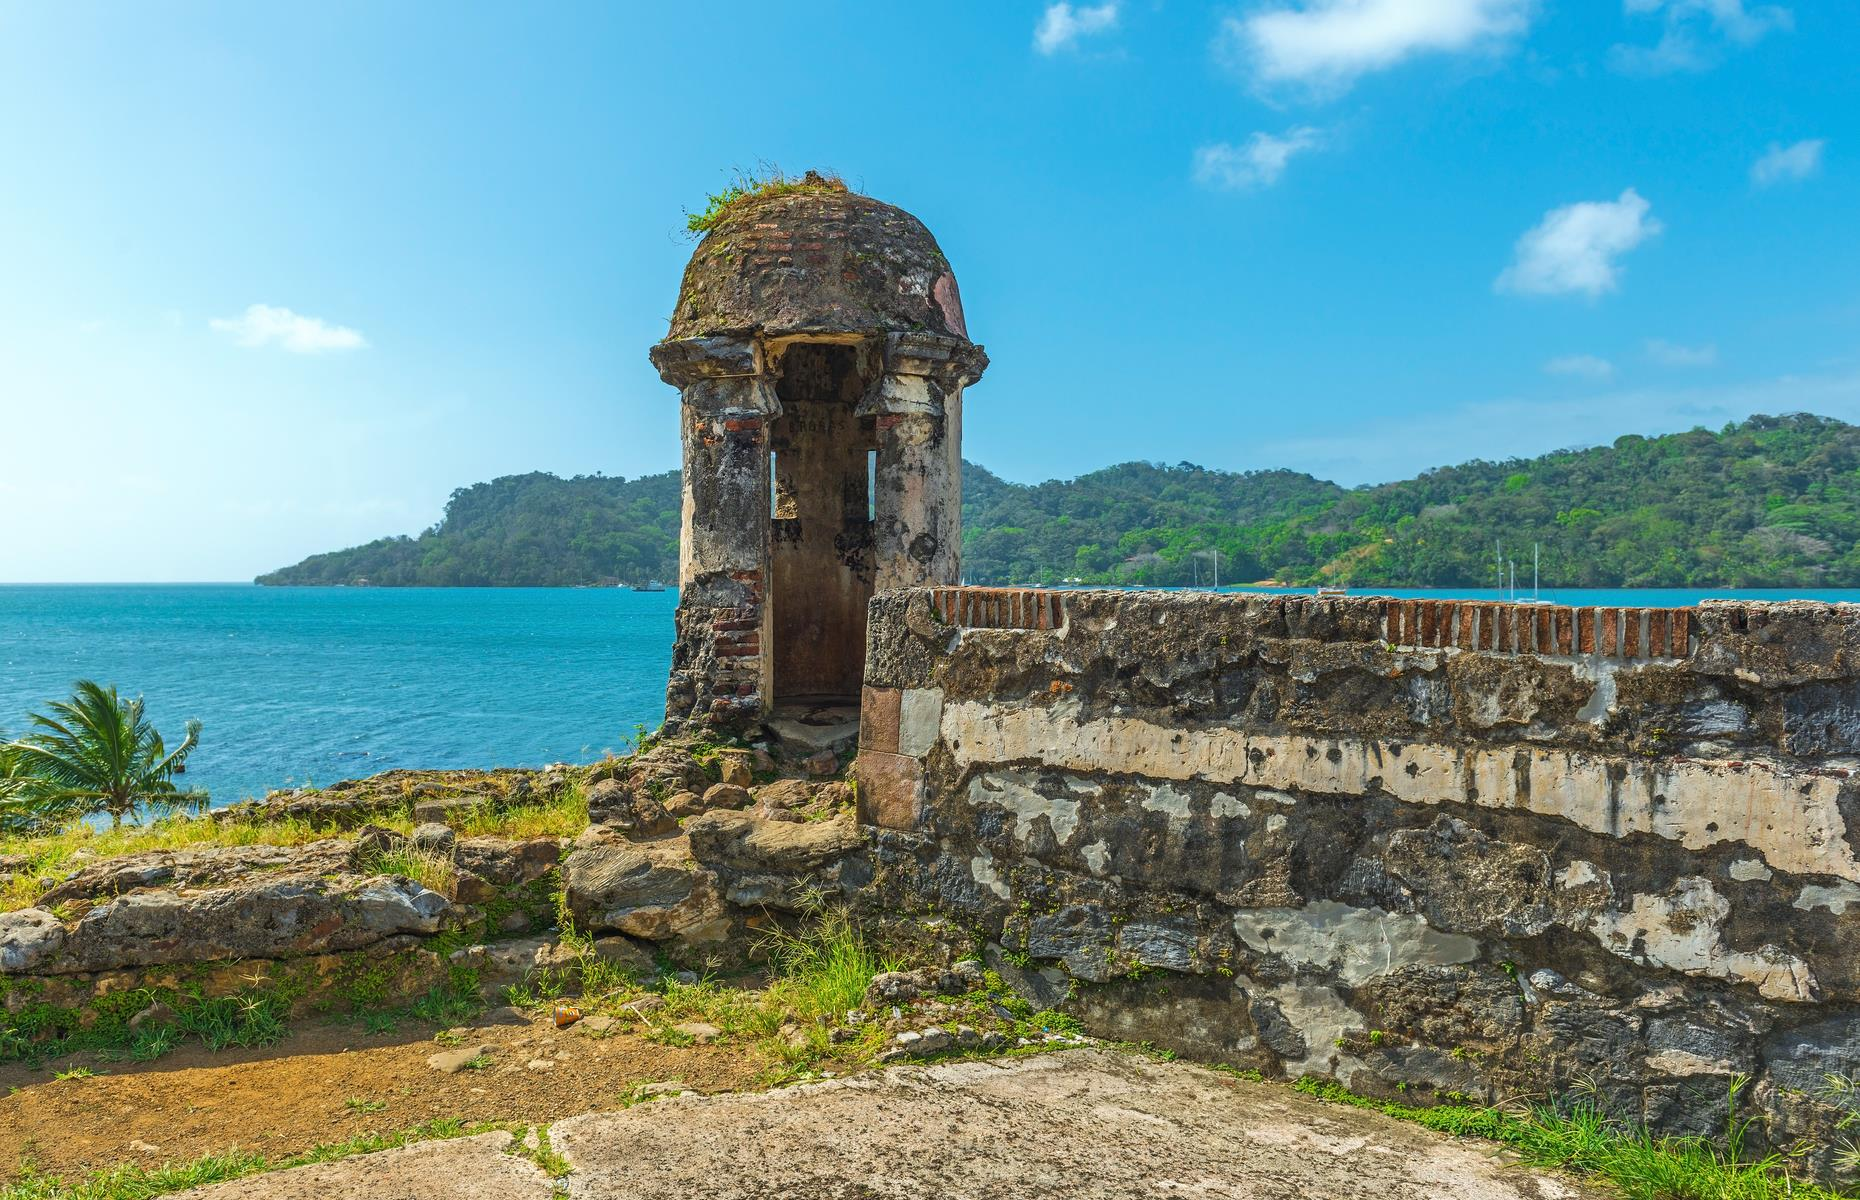 "Slide 35 of 53: The 17th and 18th-century military fortifications on Panama's Caribbean coast are described as: ""a masterpiece of human creative genius"" by UNESCO. They formed part of a defense system built by the Spanish crown to protect transatlantic trade. Portobelo was a major Caribbean port and played a leading role in controlling the imperial trade in the Americas. It's been deemed as at risk since 2012 due to a variety of environmental factors, as well as uncontrolled urban sprawl and development and a lack of maintenance and management."